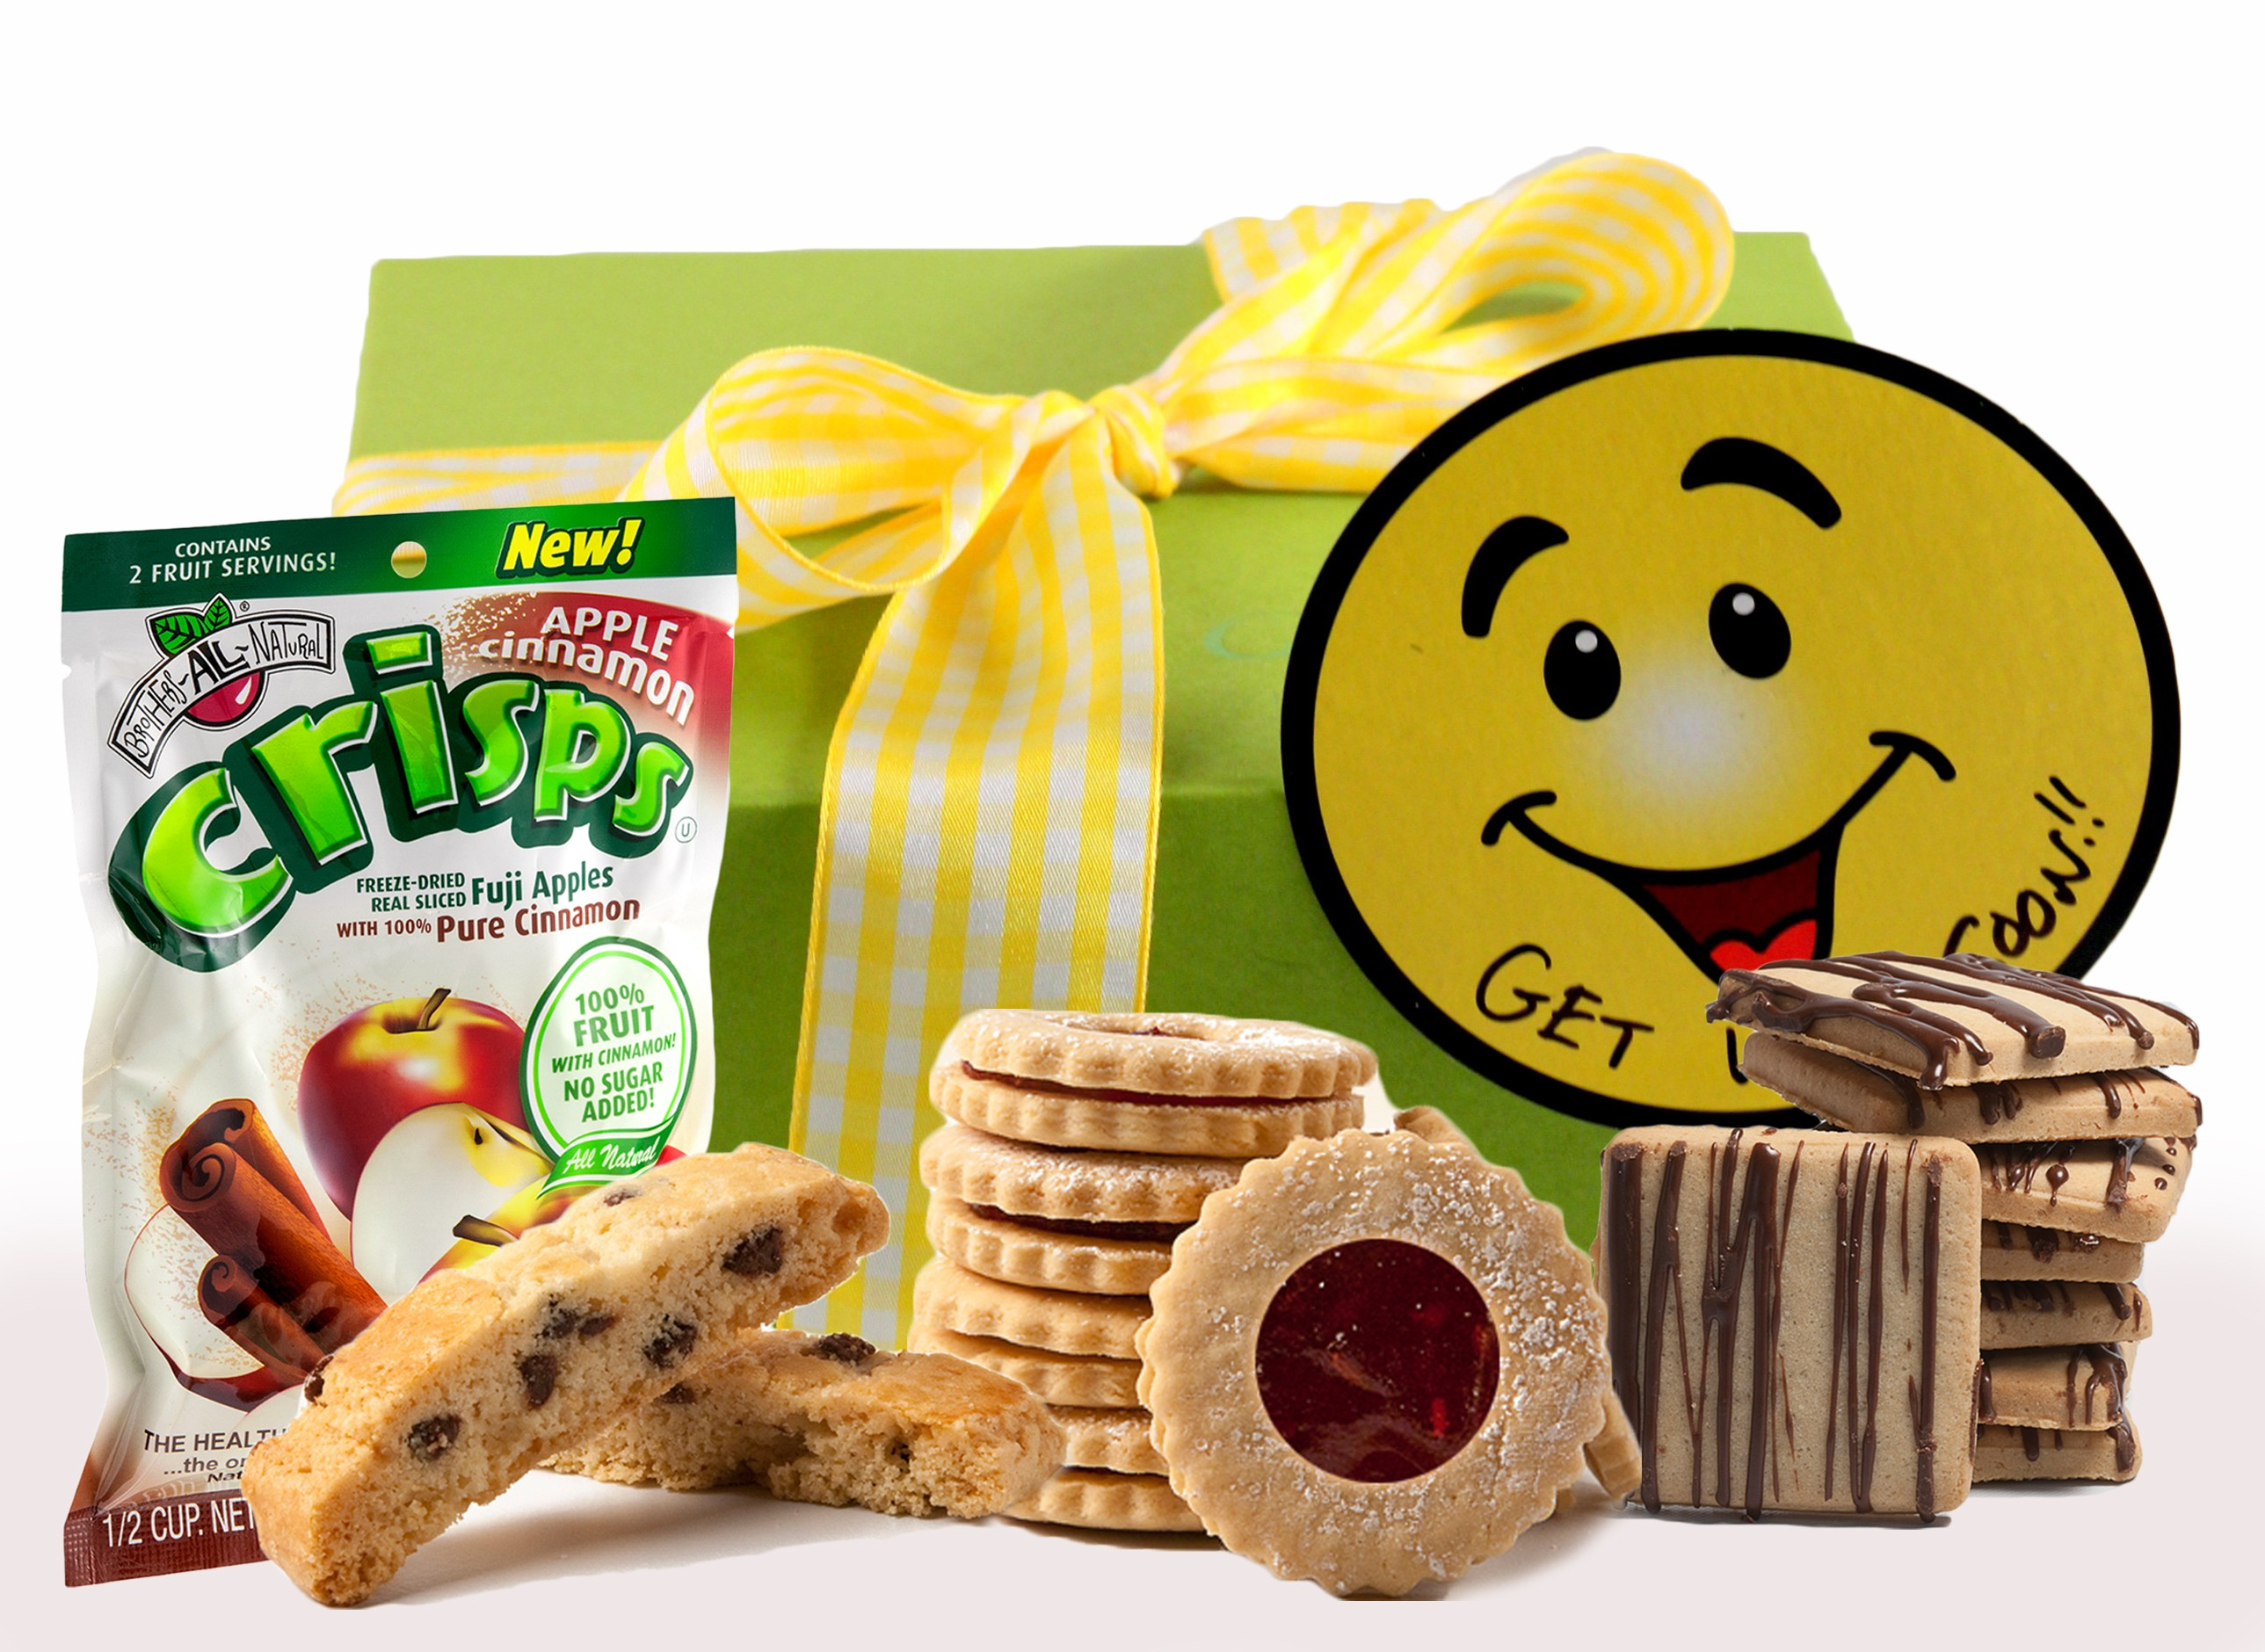 Get Well Quick! Gluten Free Gift Pack